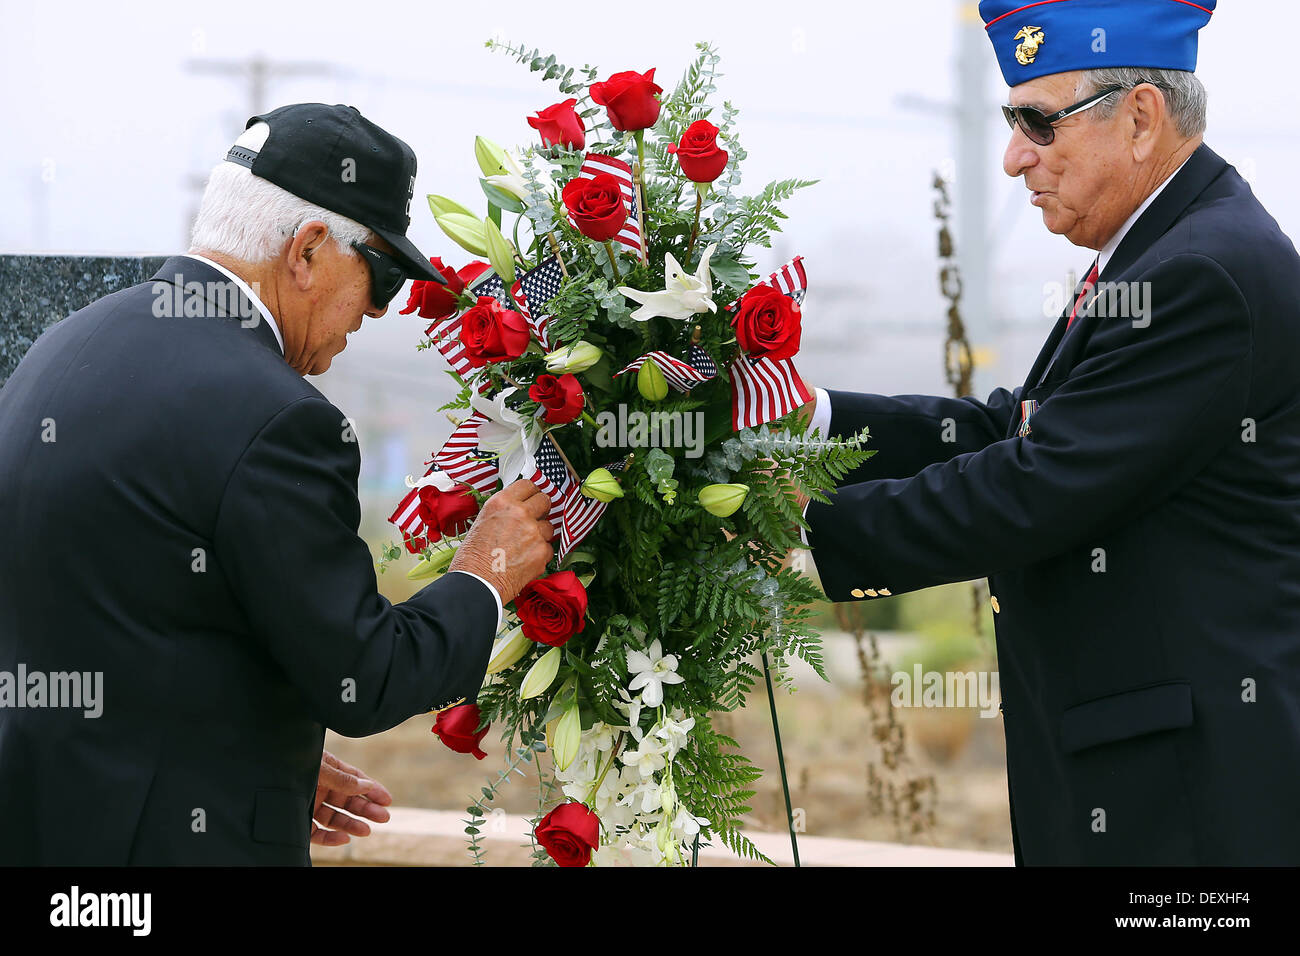 The Past National President of the Chosin Few Chapter Bob Licker holds the wreath for the Chosen Few veterans that are placing American flags in it during the 63rd Anniversary of the Landing on Inchon held at the Chosin Few Monument adjacent to the Pacifi - Stock Image